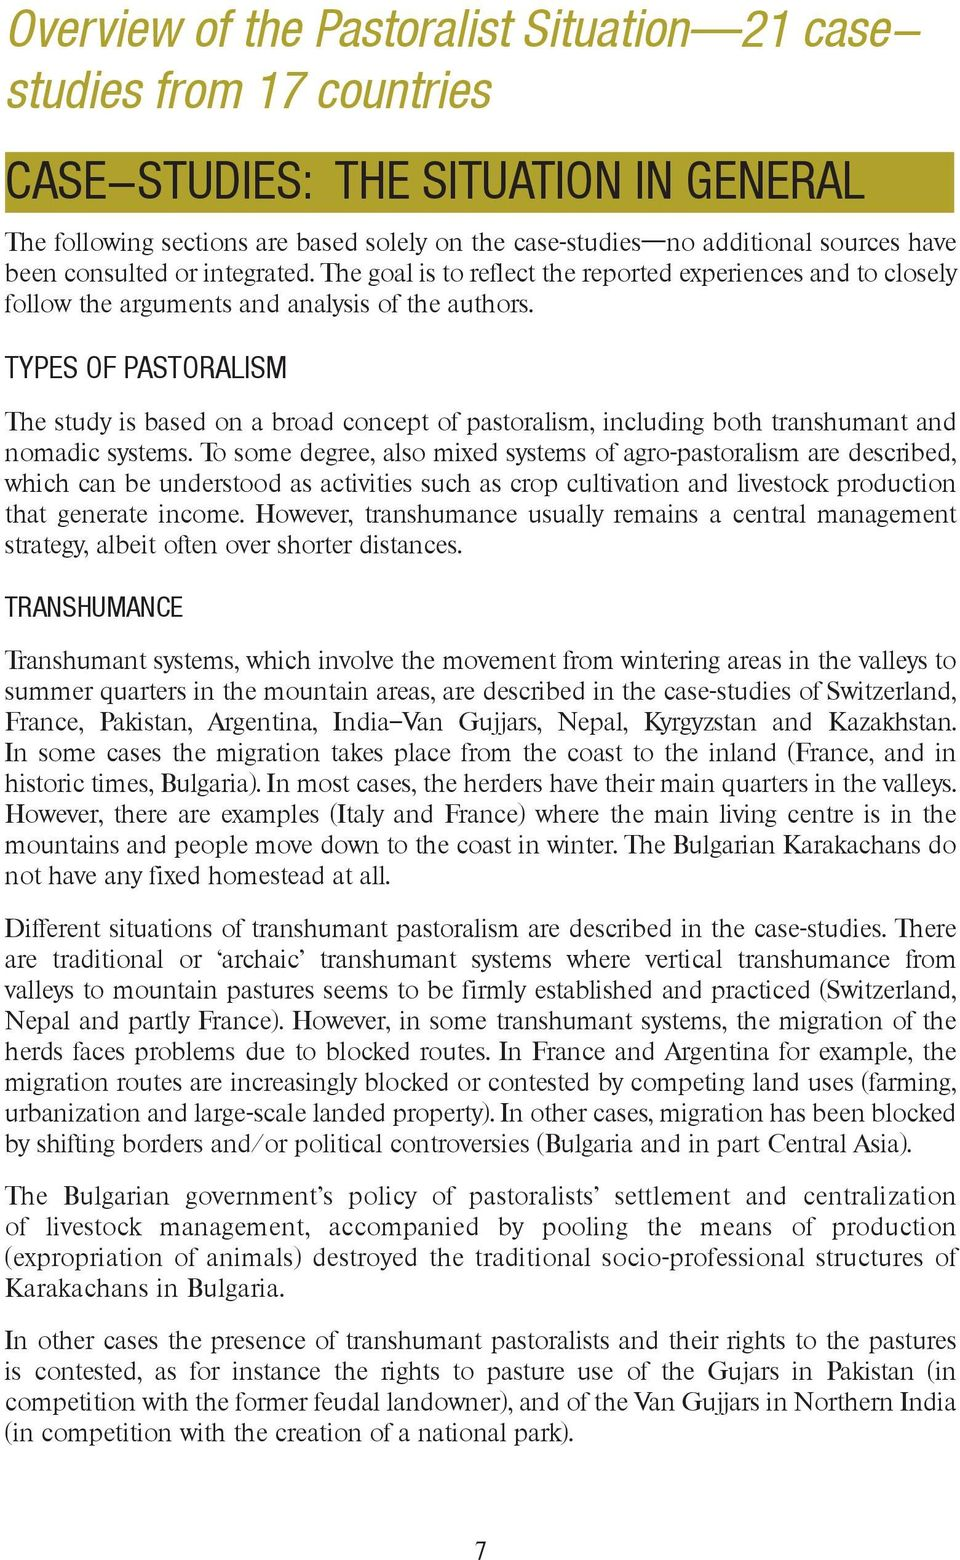 TYPES OF PASTORALISM The study is based on a broad concept of pastoralism, including both transhumant and nomadic systems.